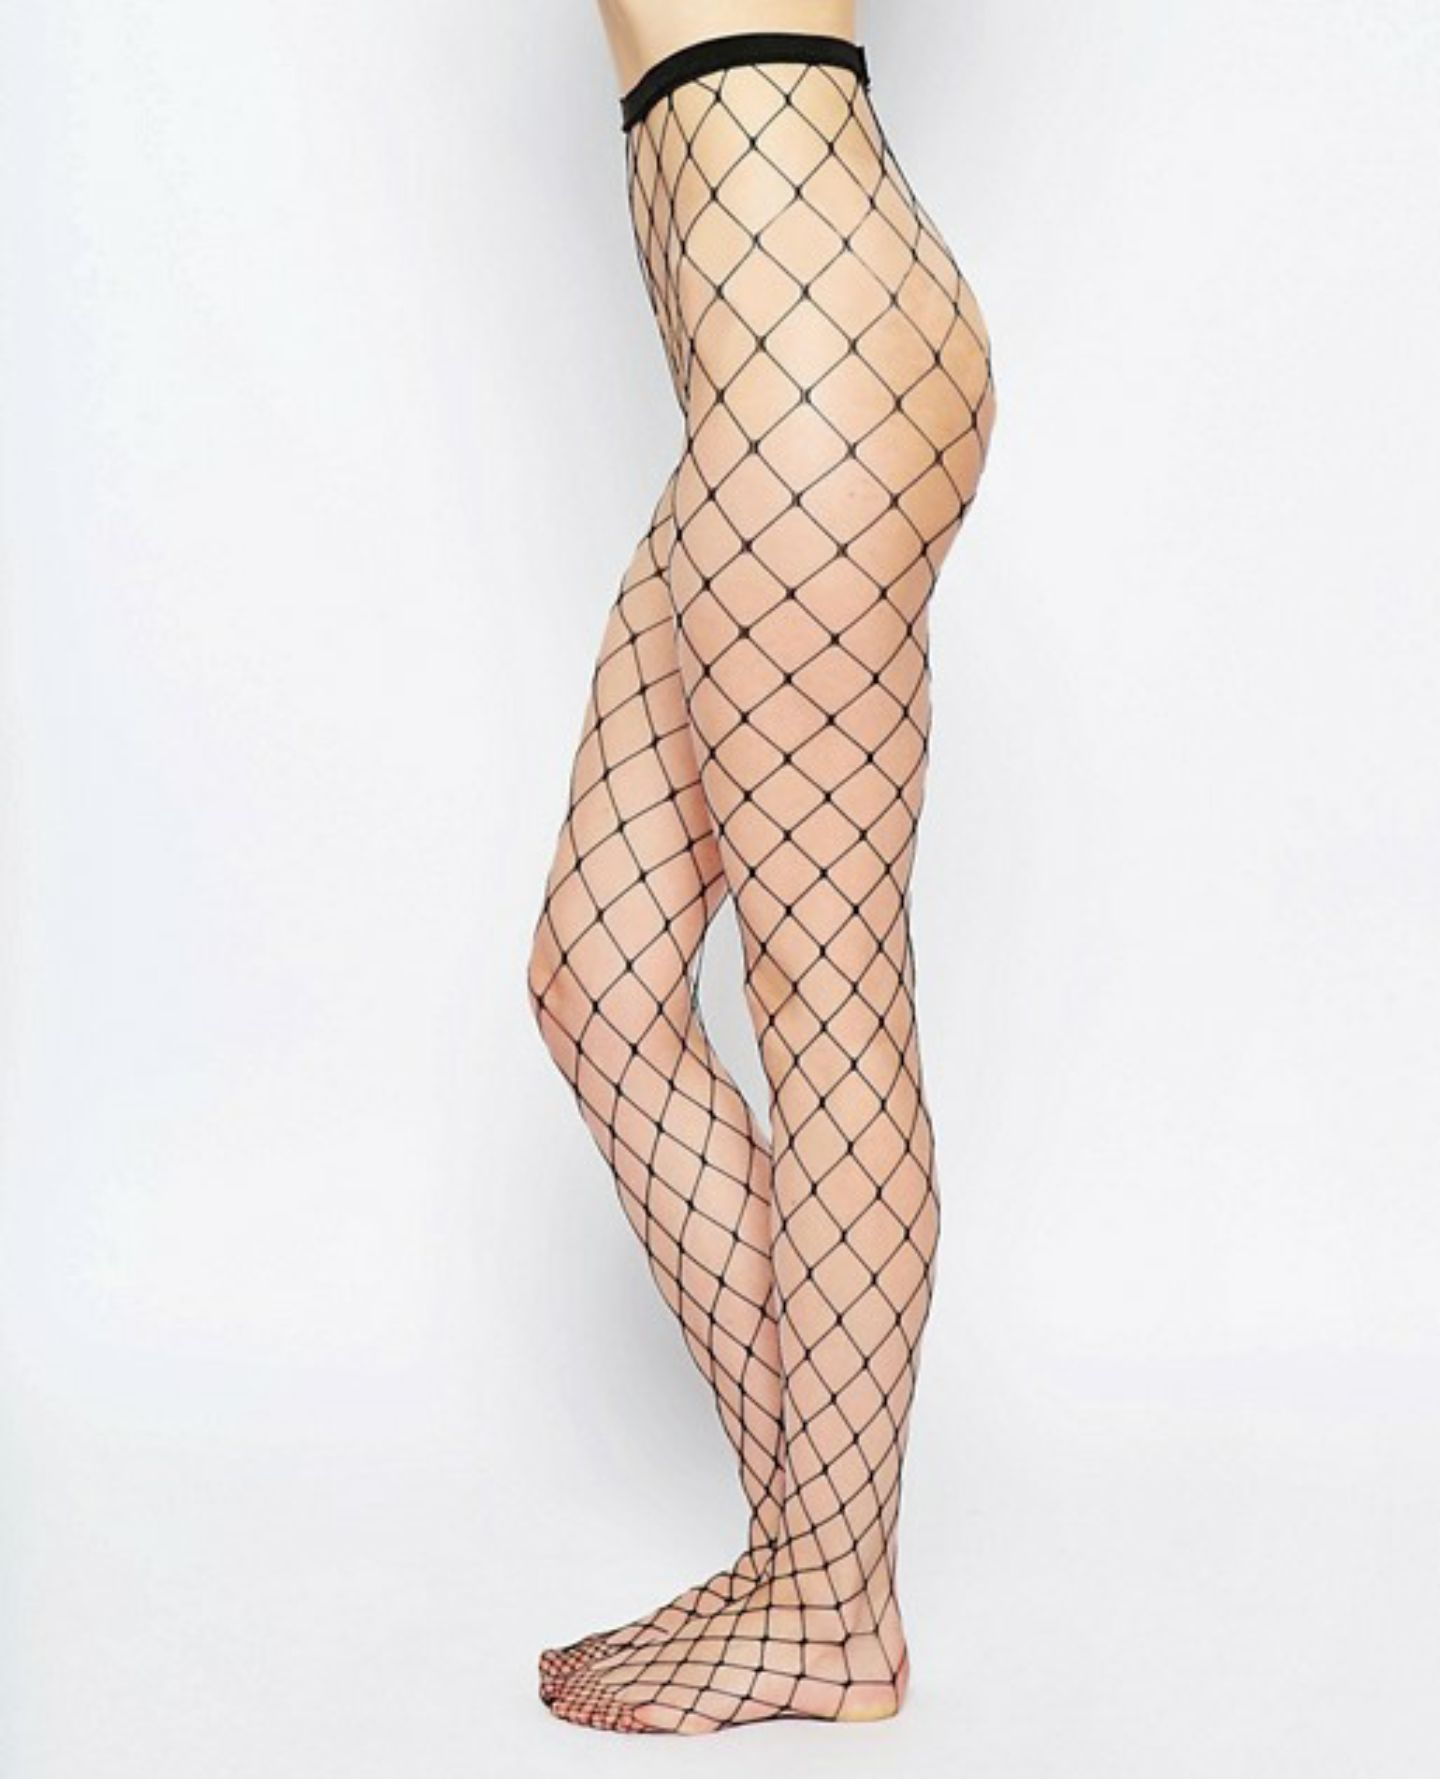 6461d4667 High waisted Fish Net Pantyhose. High waisted Fish Net Pantyhose Fishnet  Stockings ...